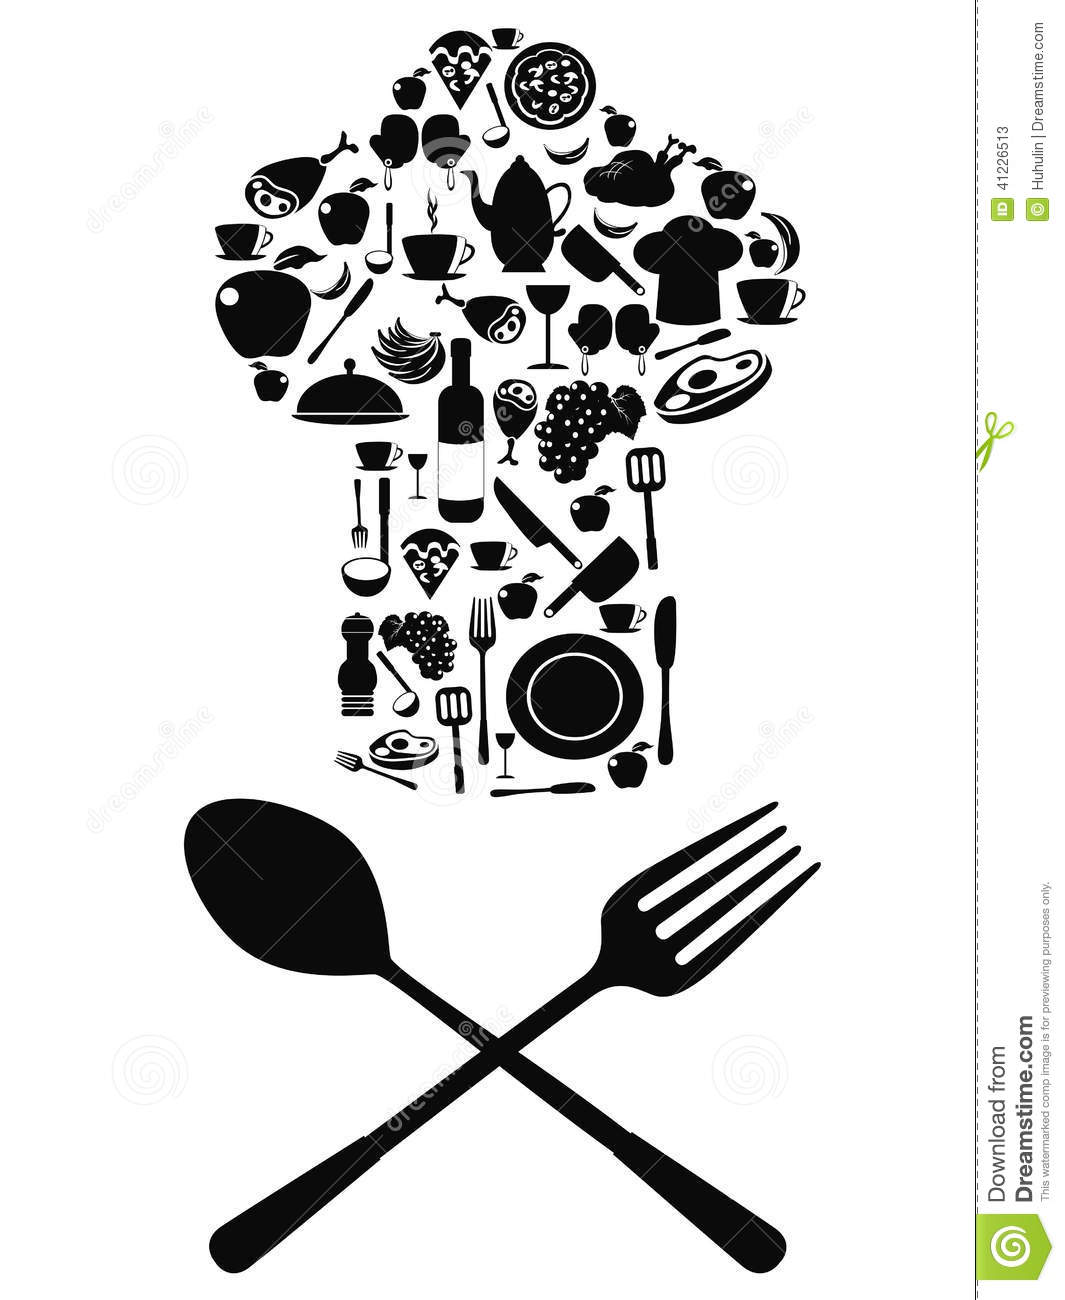 Chef Symbol With Spoon And Knife Stock Vector